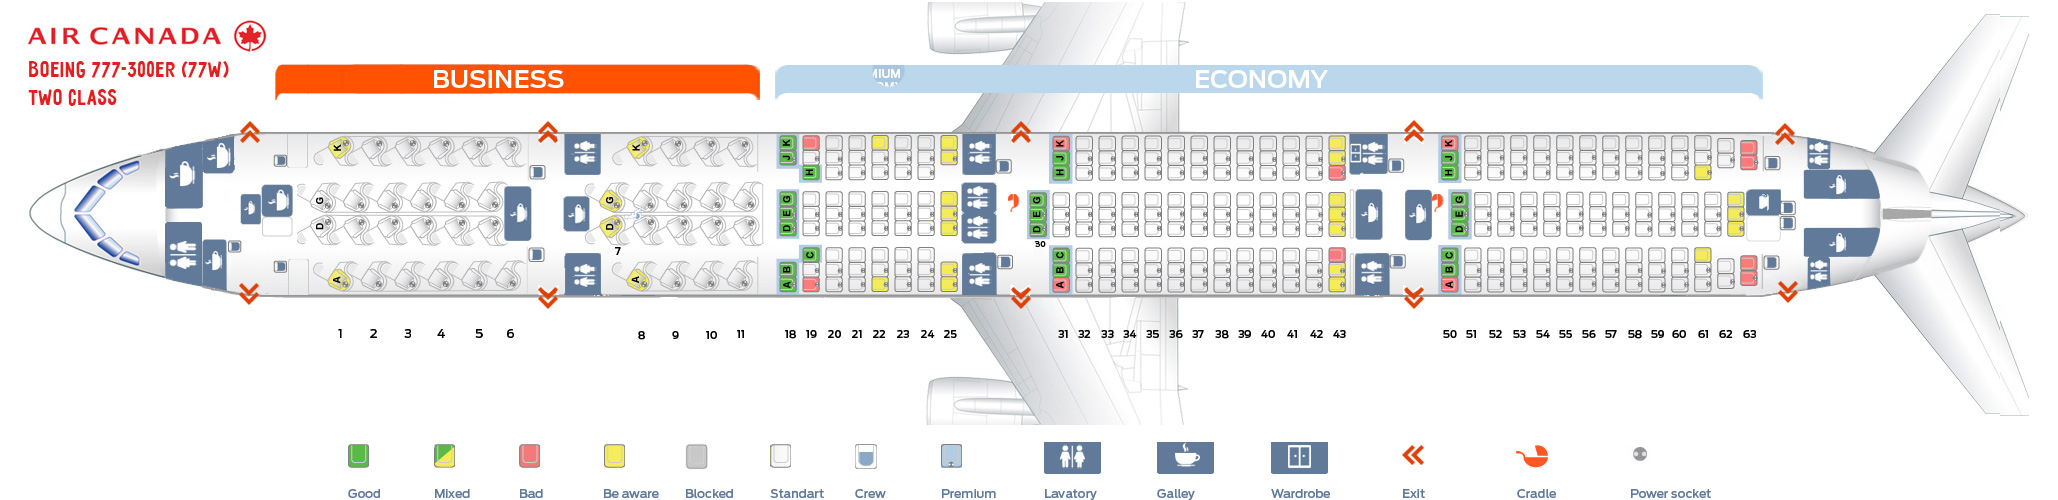 Seat map Boeing 777-300 Air Canada. Best seats in plane